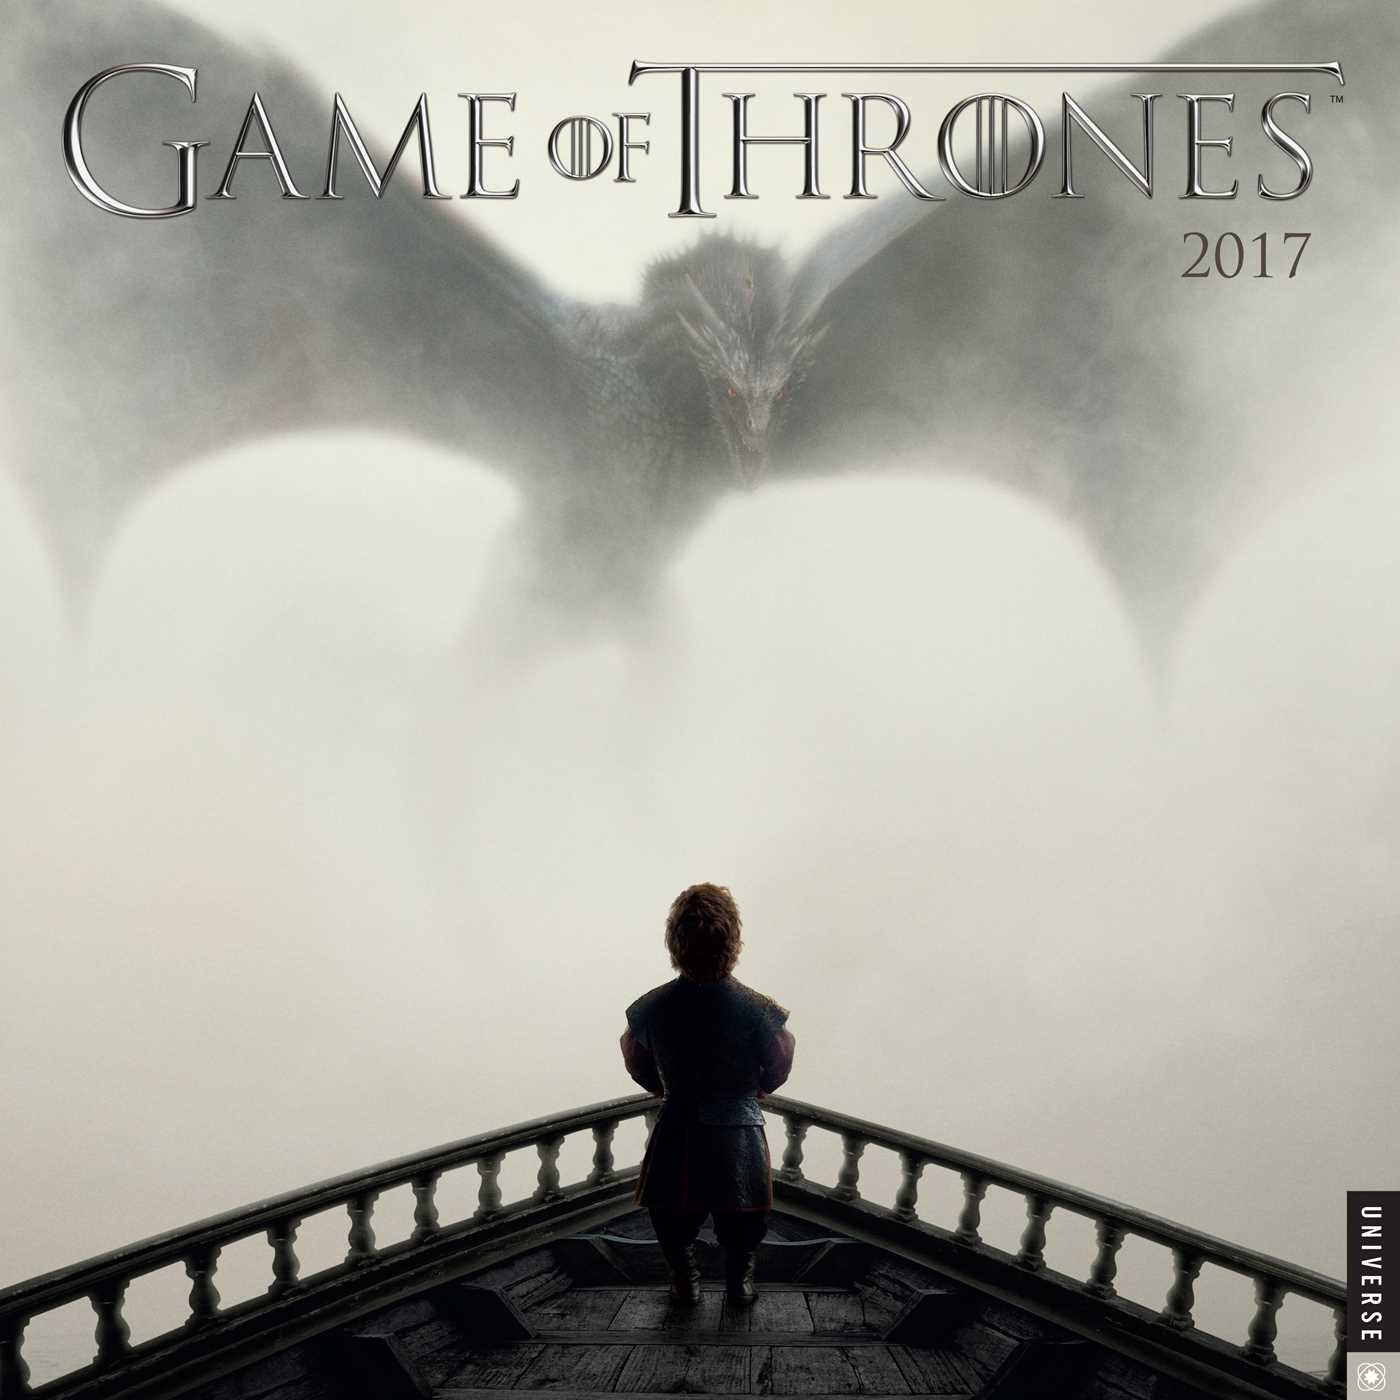 Game of Thrones 2017 Wall